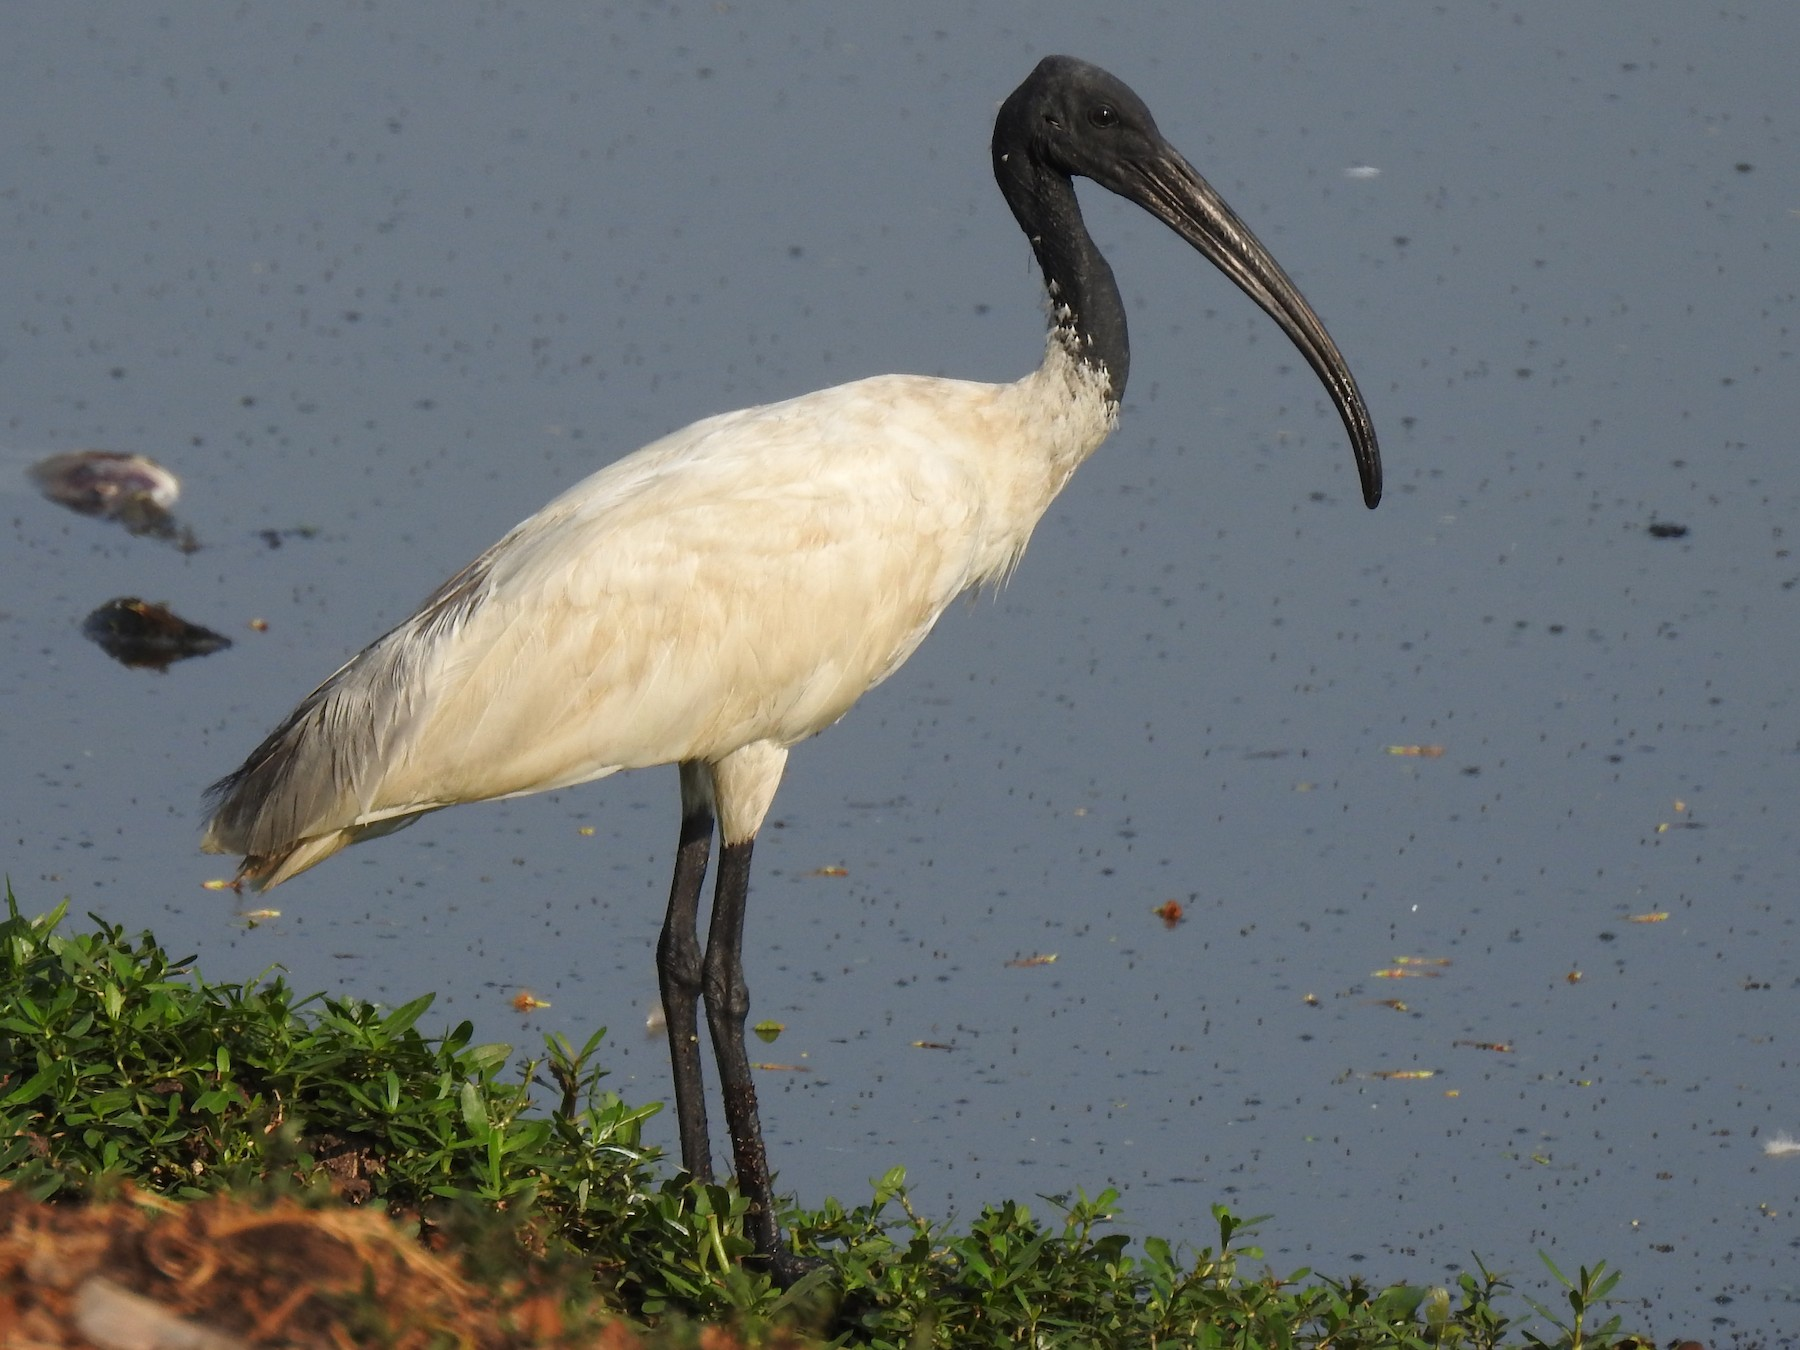 Black-headed Ibis - G Parameswaran